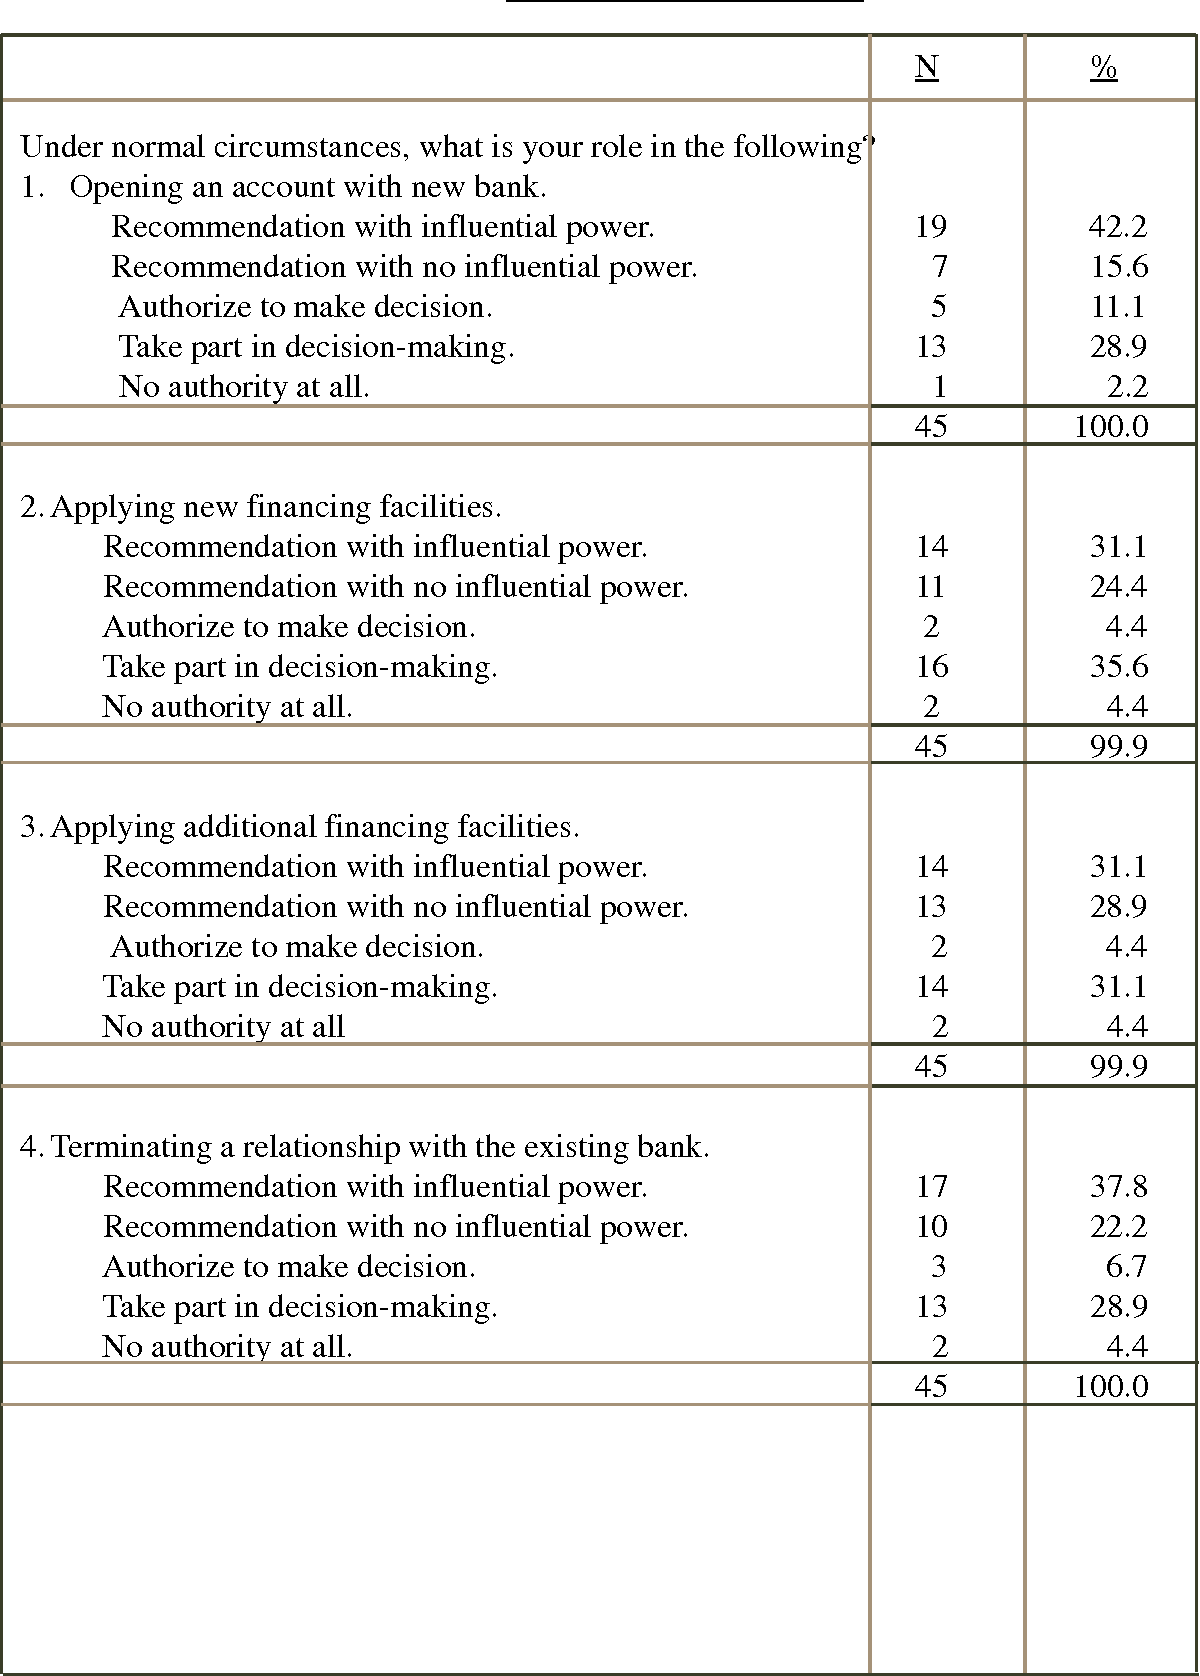 Table 4 from Perceptions of Malaysian corporate customers